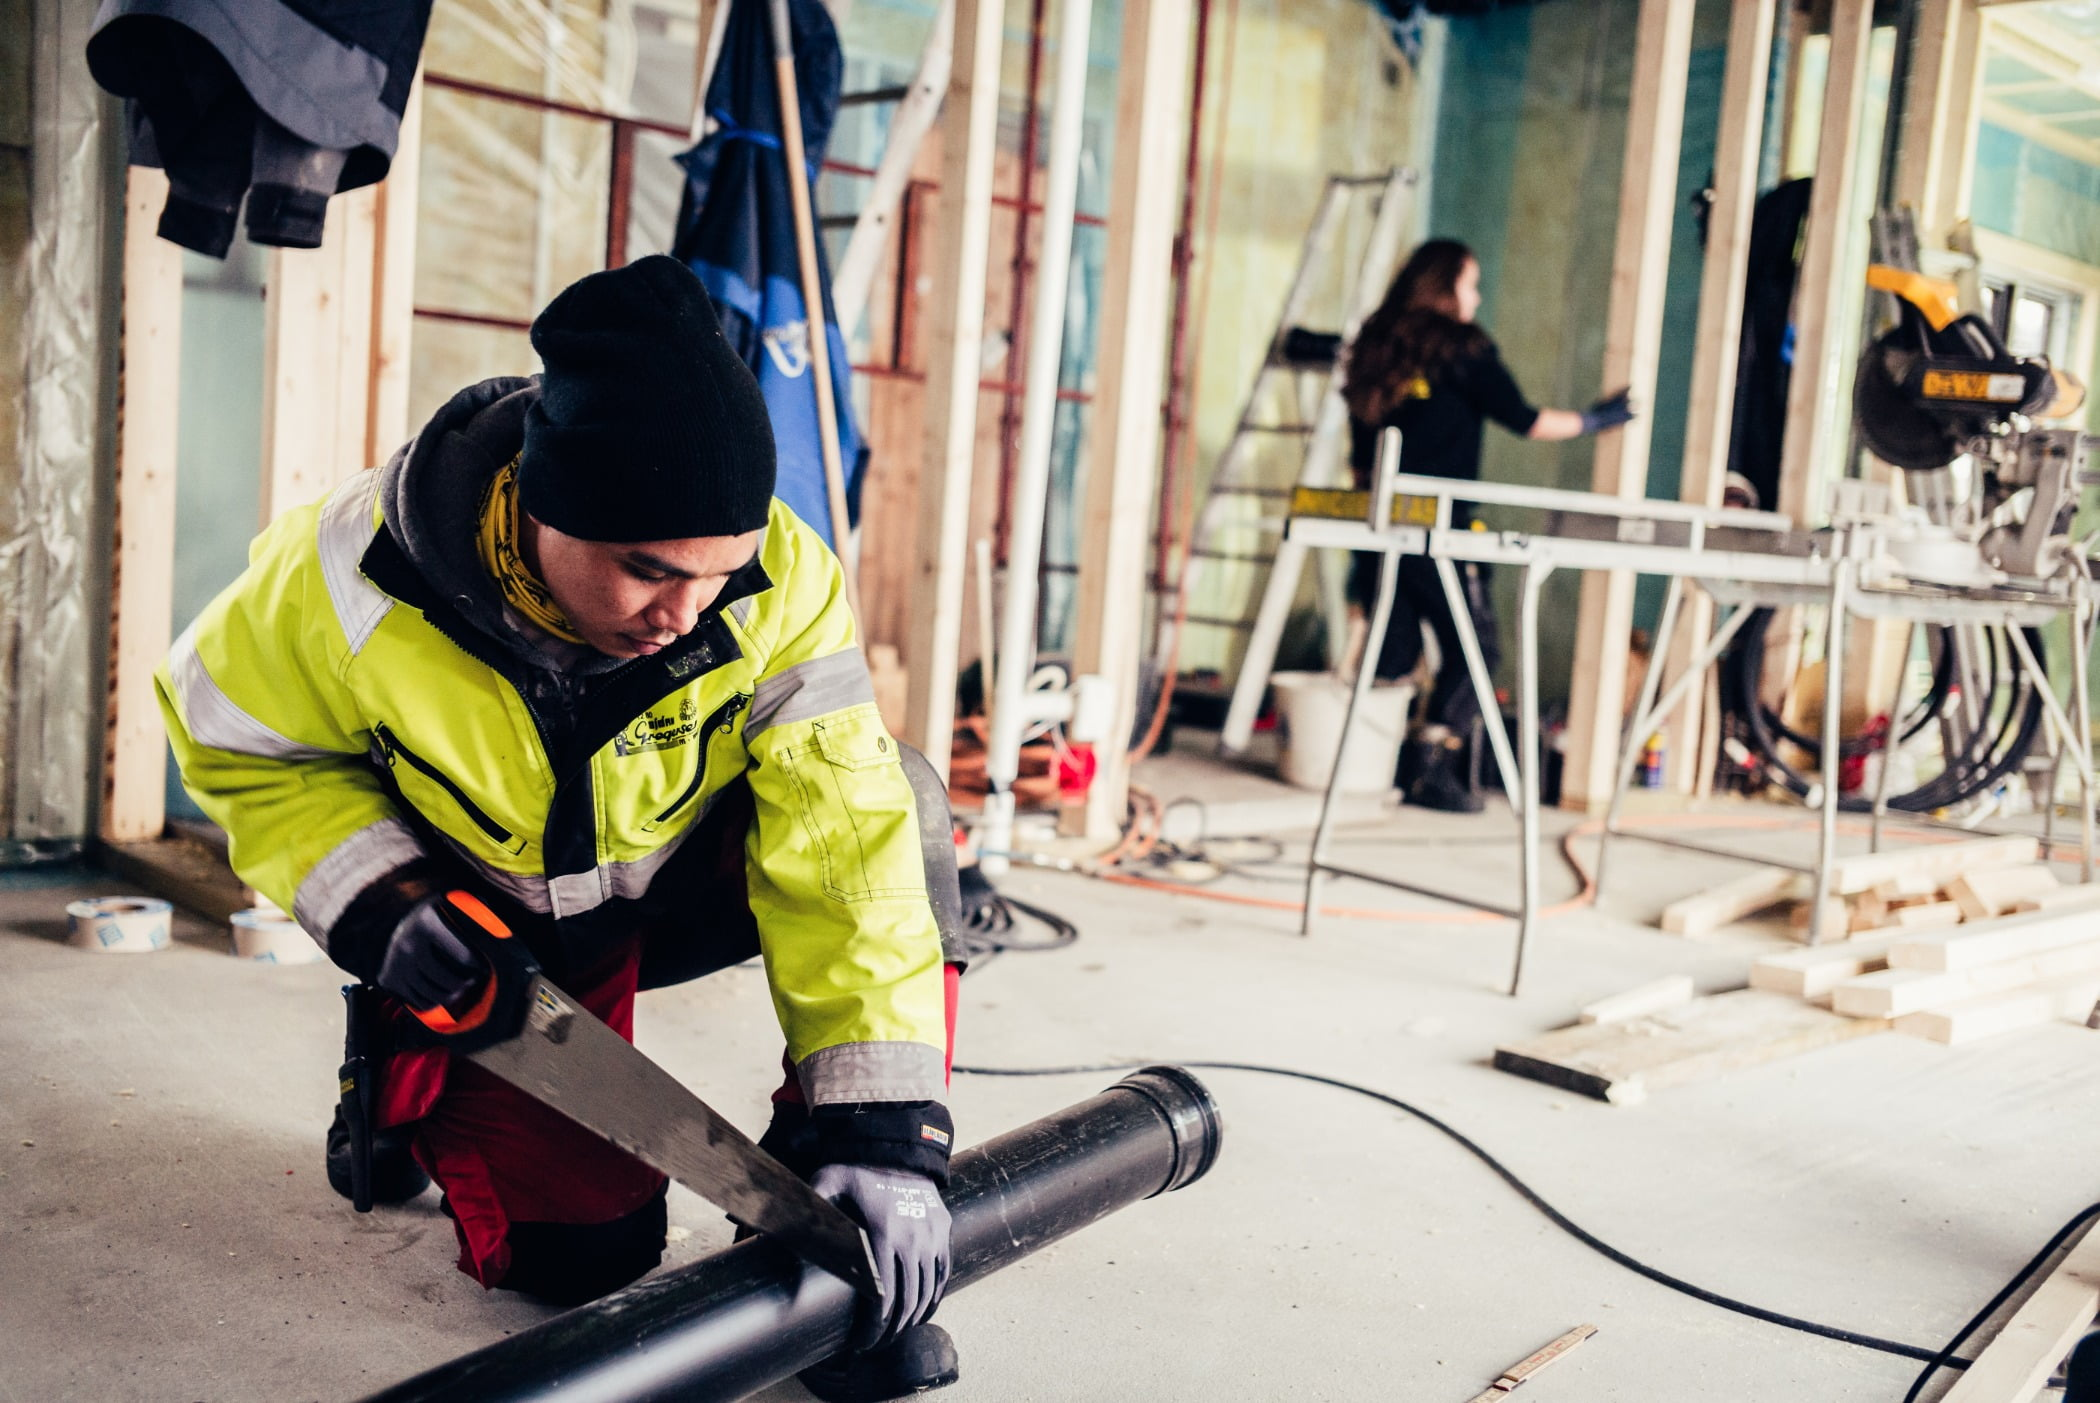 Blue-collar worker, High-visibility clothing, Service, Workwear